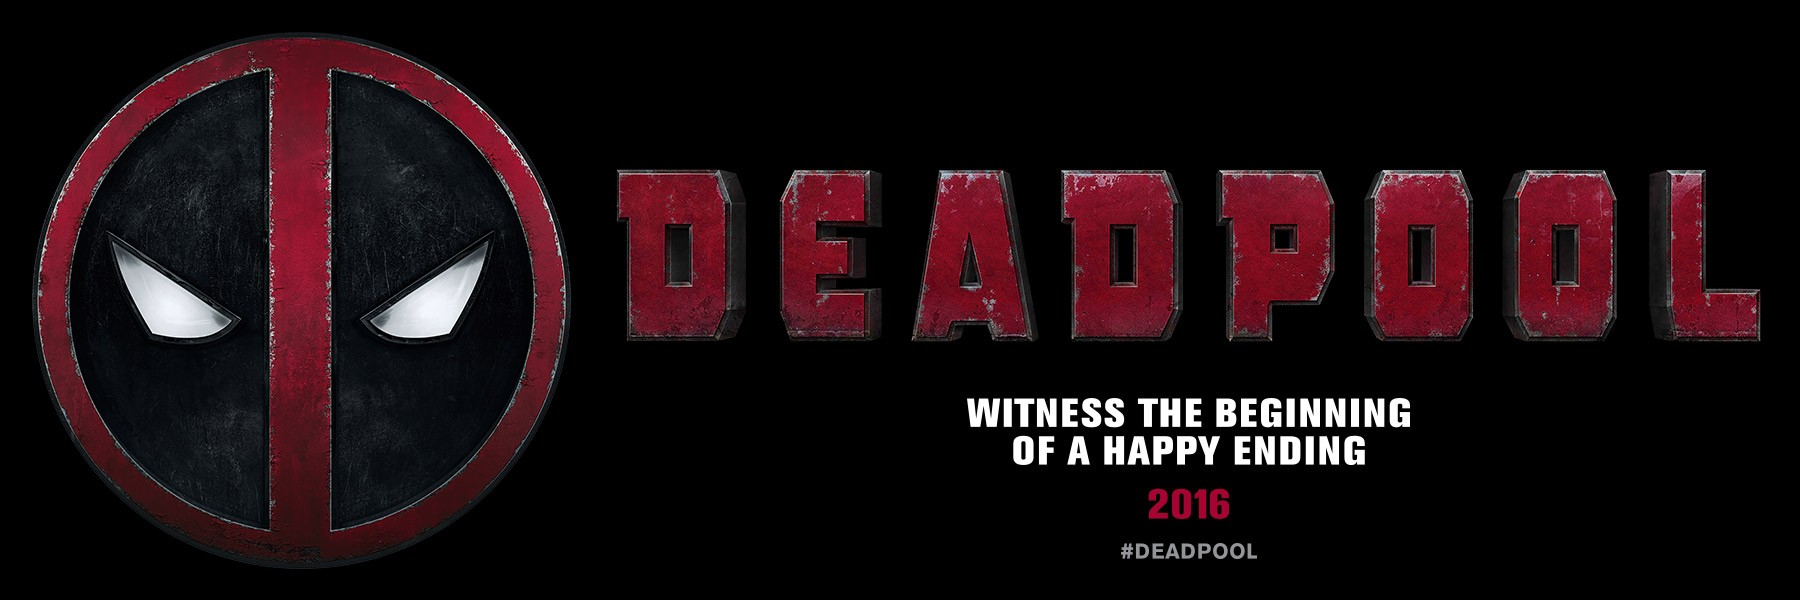 First Official 'Deadpool' (2016) Promotional Banner